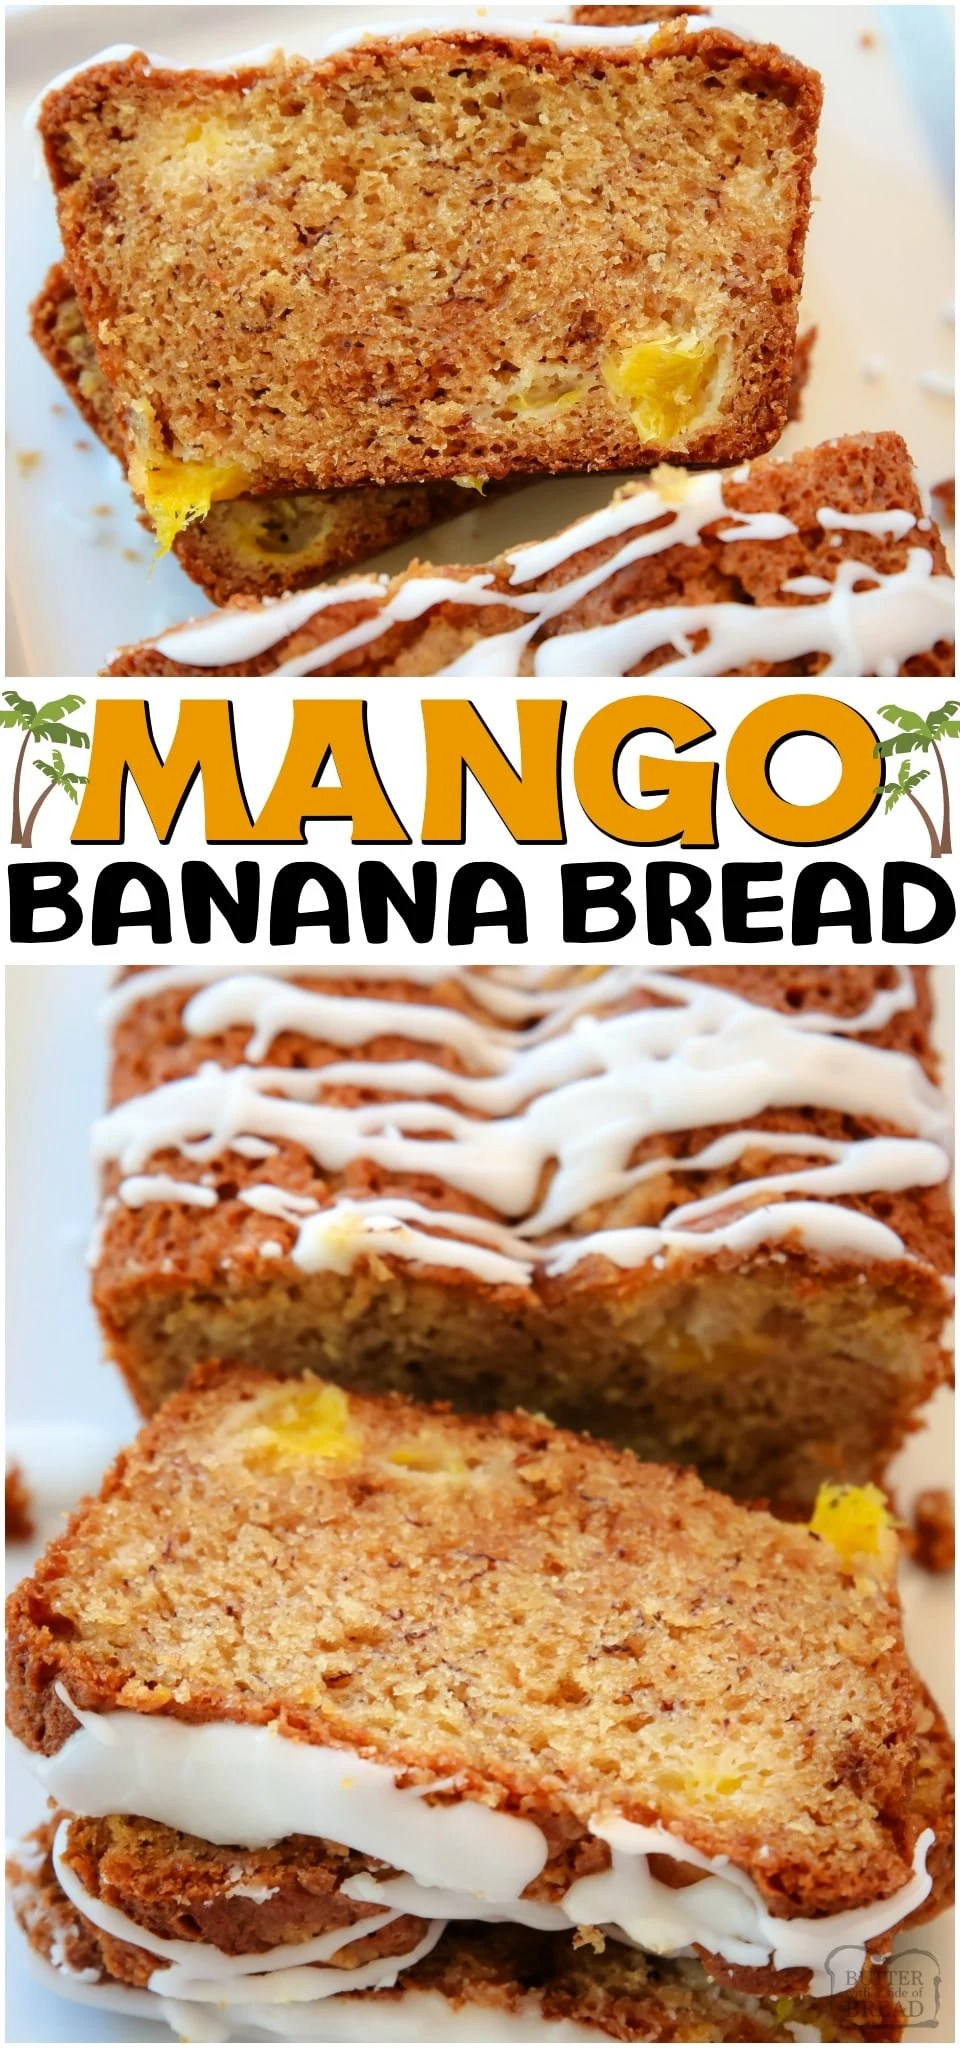 Mango Banana Bread made with ripe bananas and fresh mango, topped with a brown sugar streusel and drizzled with icing. A fantastic variation on a traditional banana bread recipe!